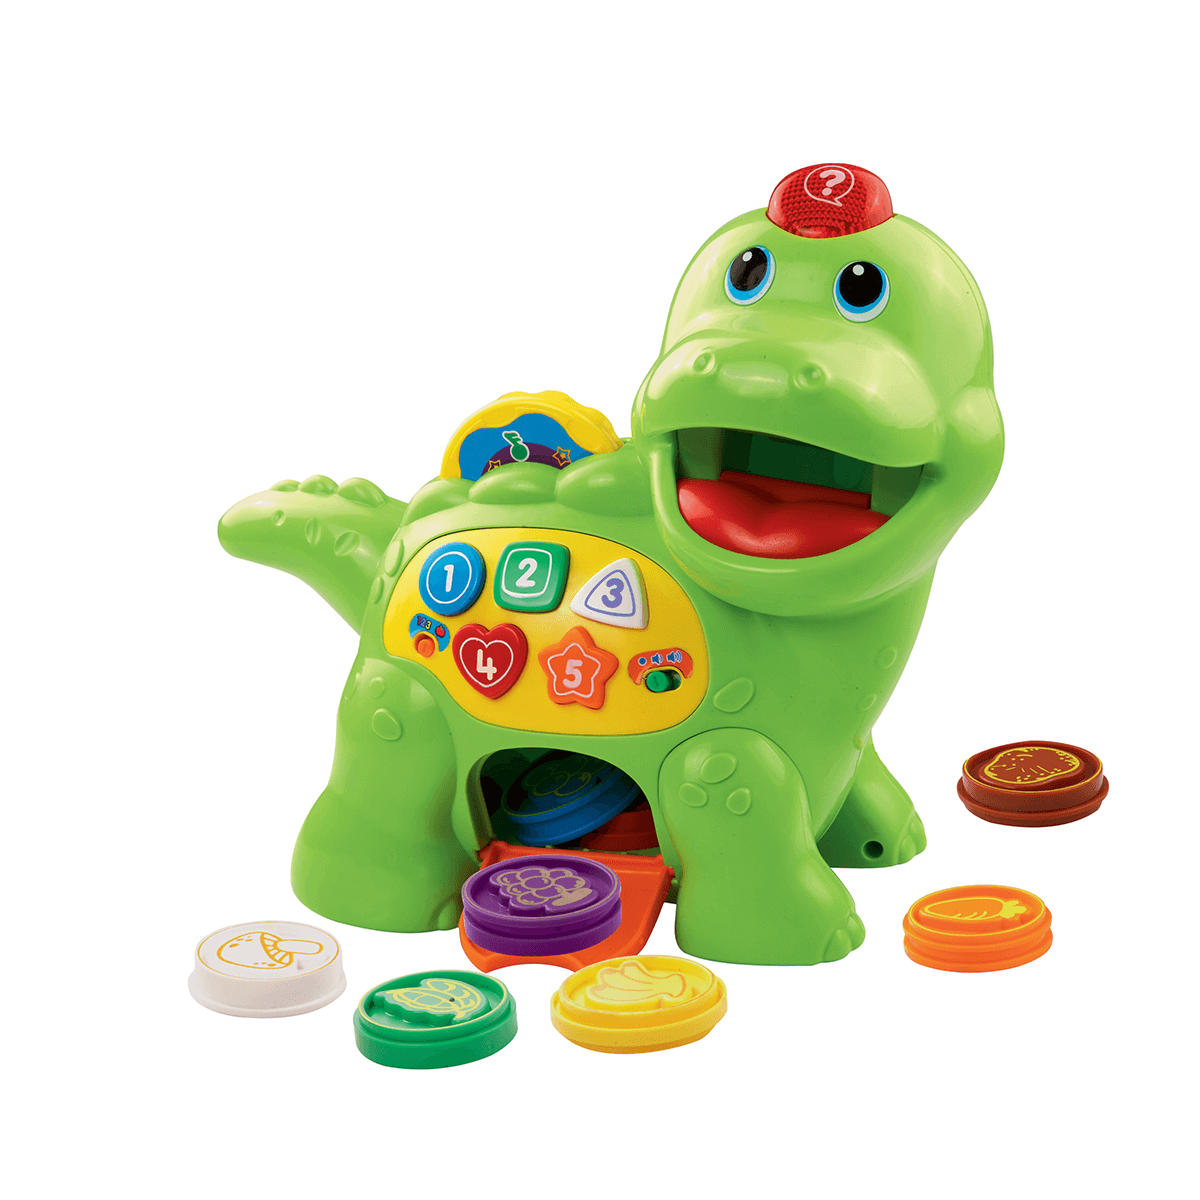 VTech Baby Feed Me Dino from Early Learning Center